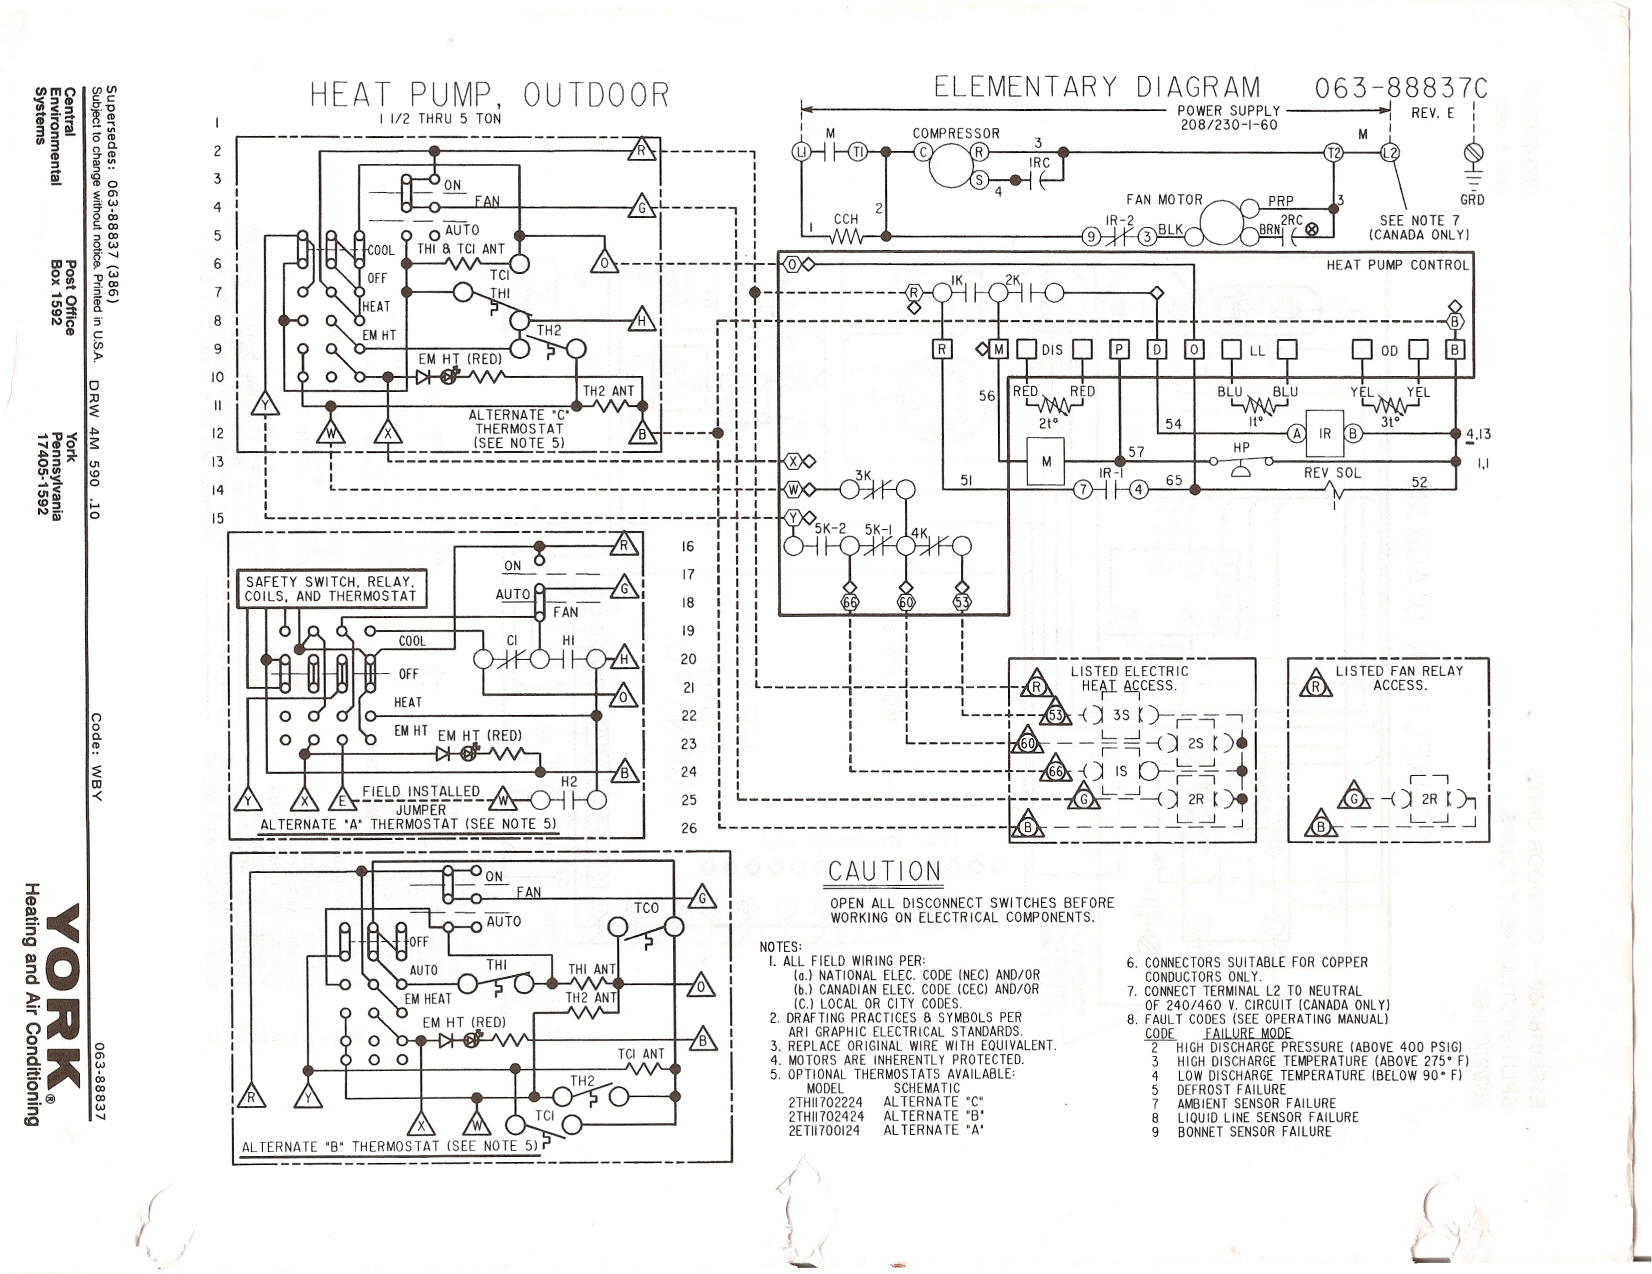 Nest Wiring Diagram Heat Pump  Air Conditioner  Boiler